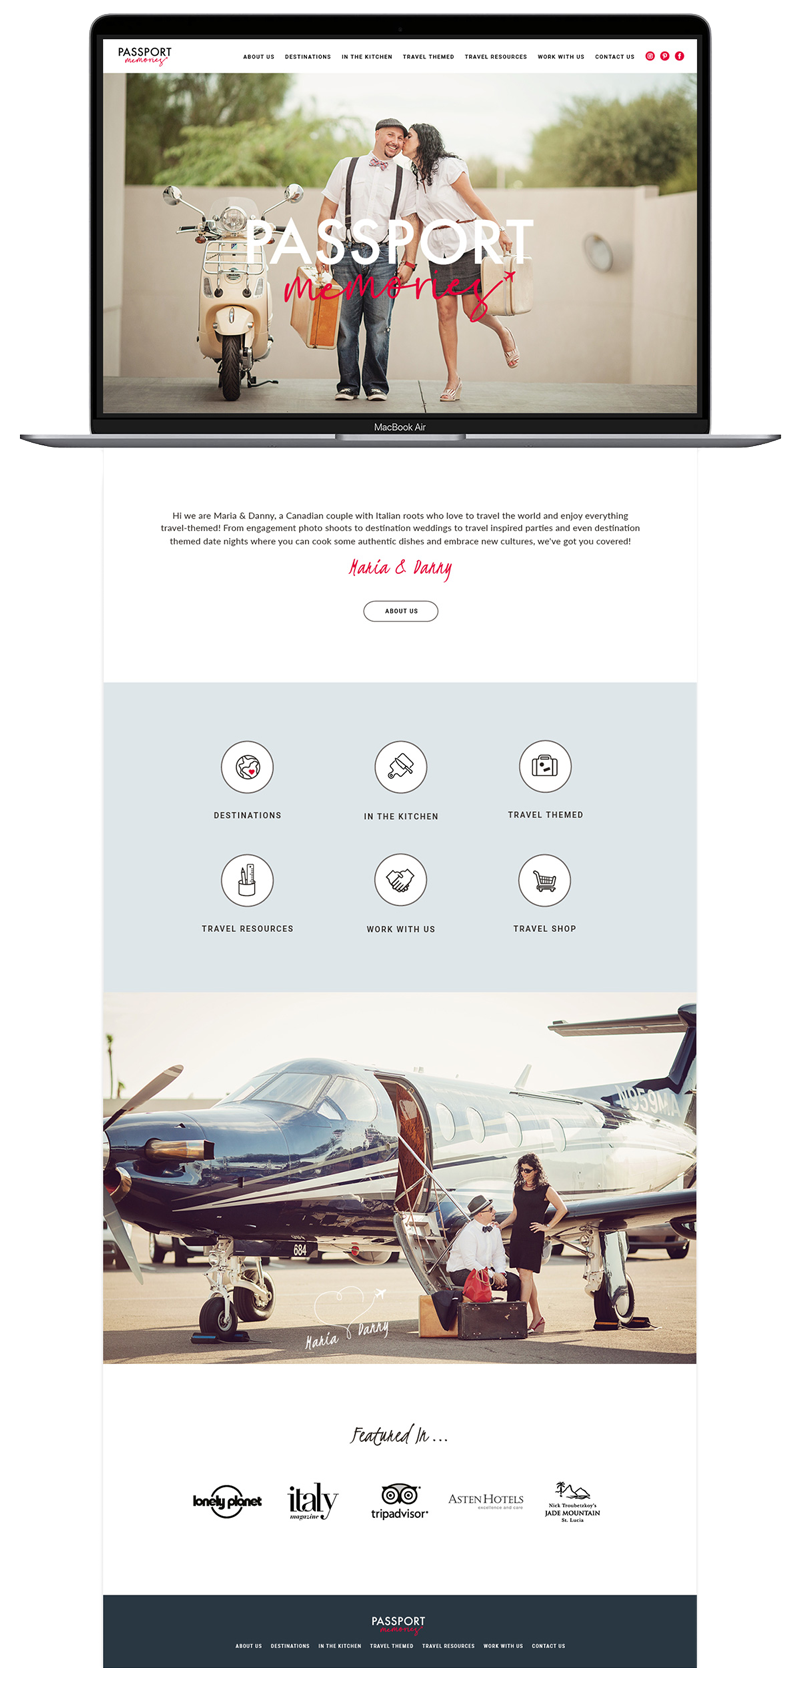 Web Design for passport memories